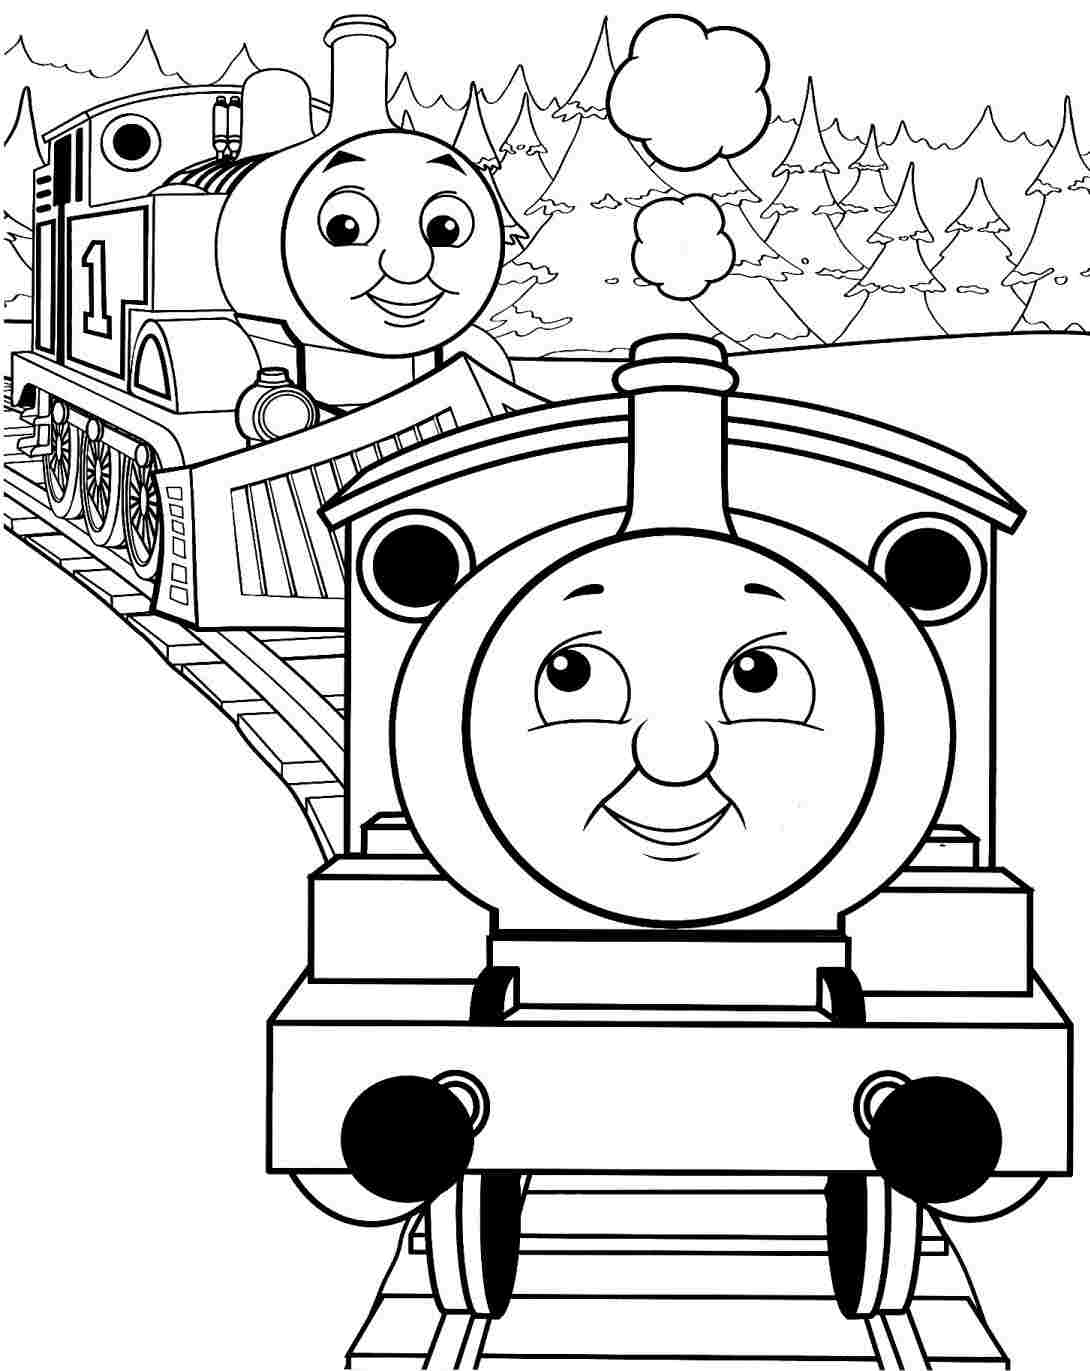 Thomas The Train Printable Coloring Pages at GetDrawings.com | Free ...